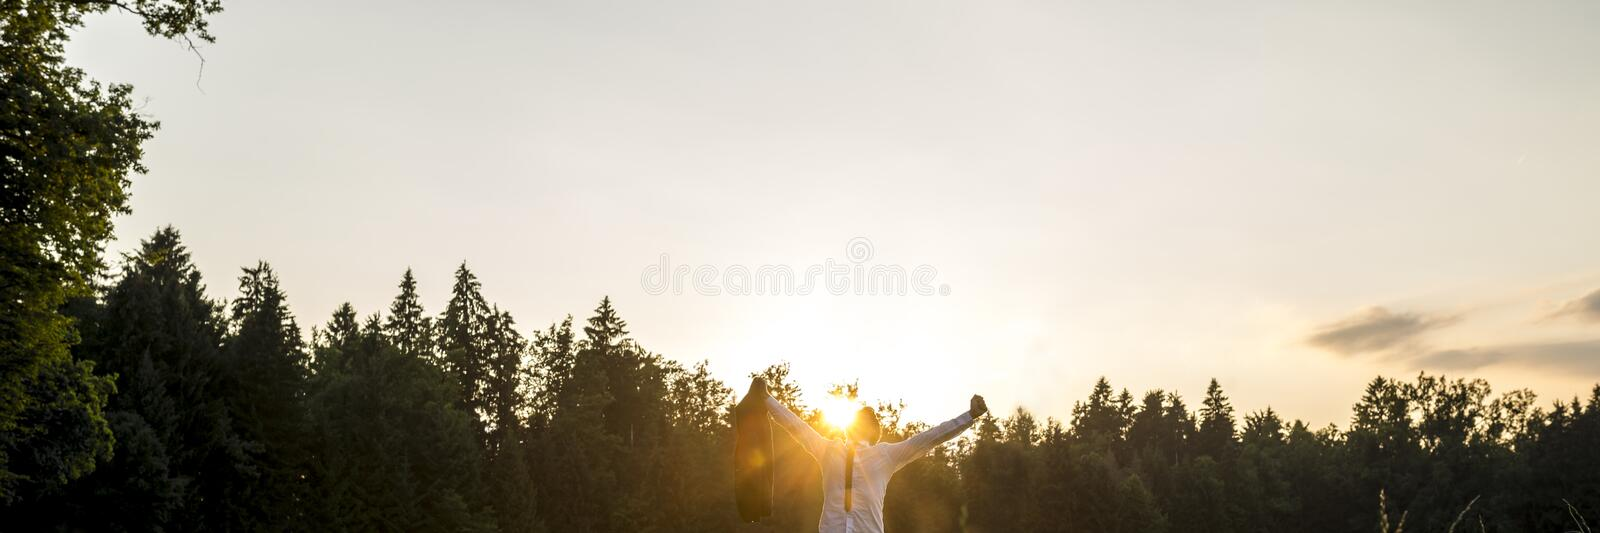 Businessman in a woodland with his arms outspread celebrating royalty free stock images